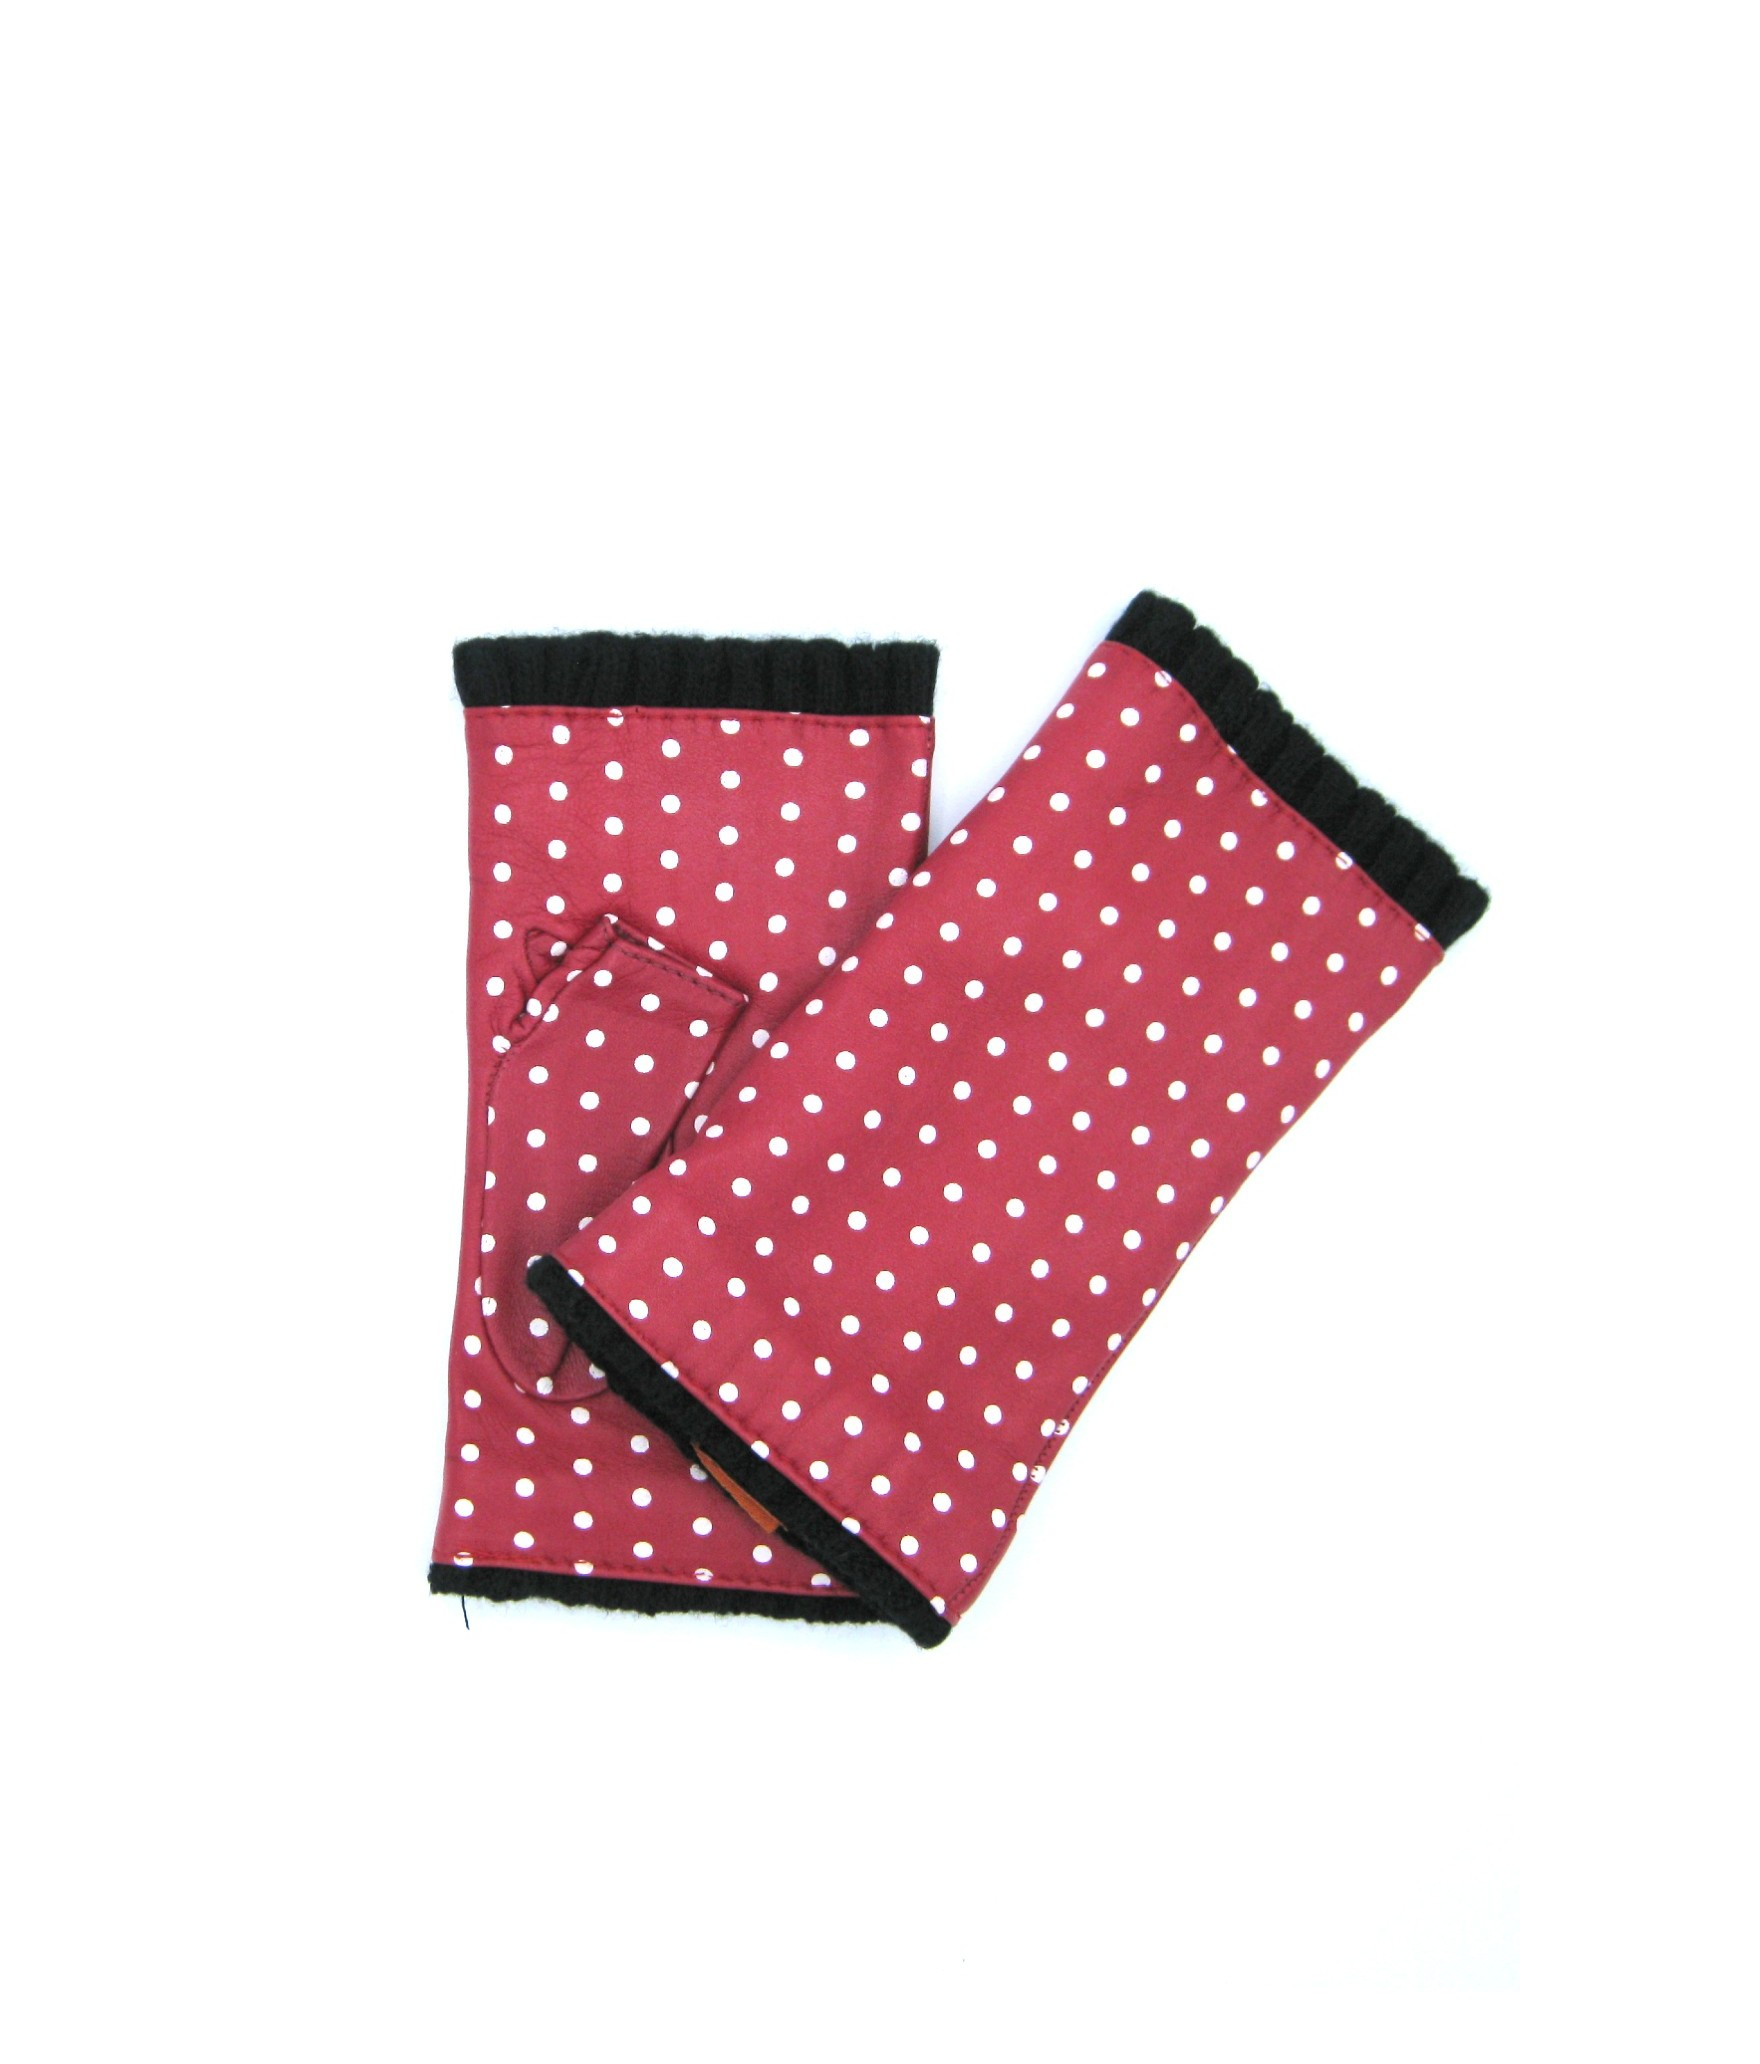 Half Mitten in Nappa leather with polka dots cashmere lined Red